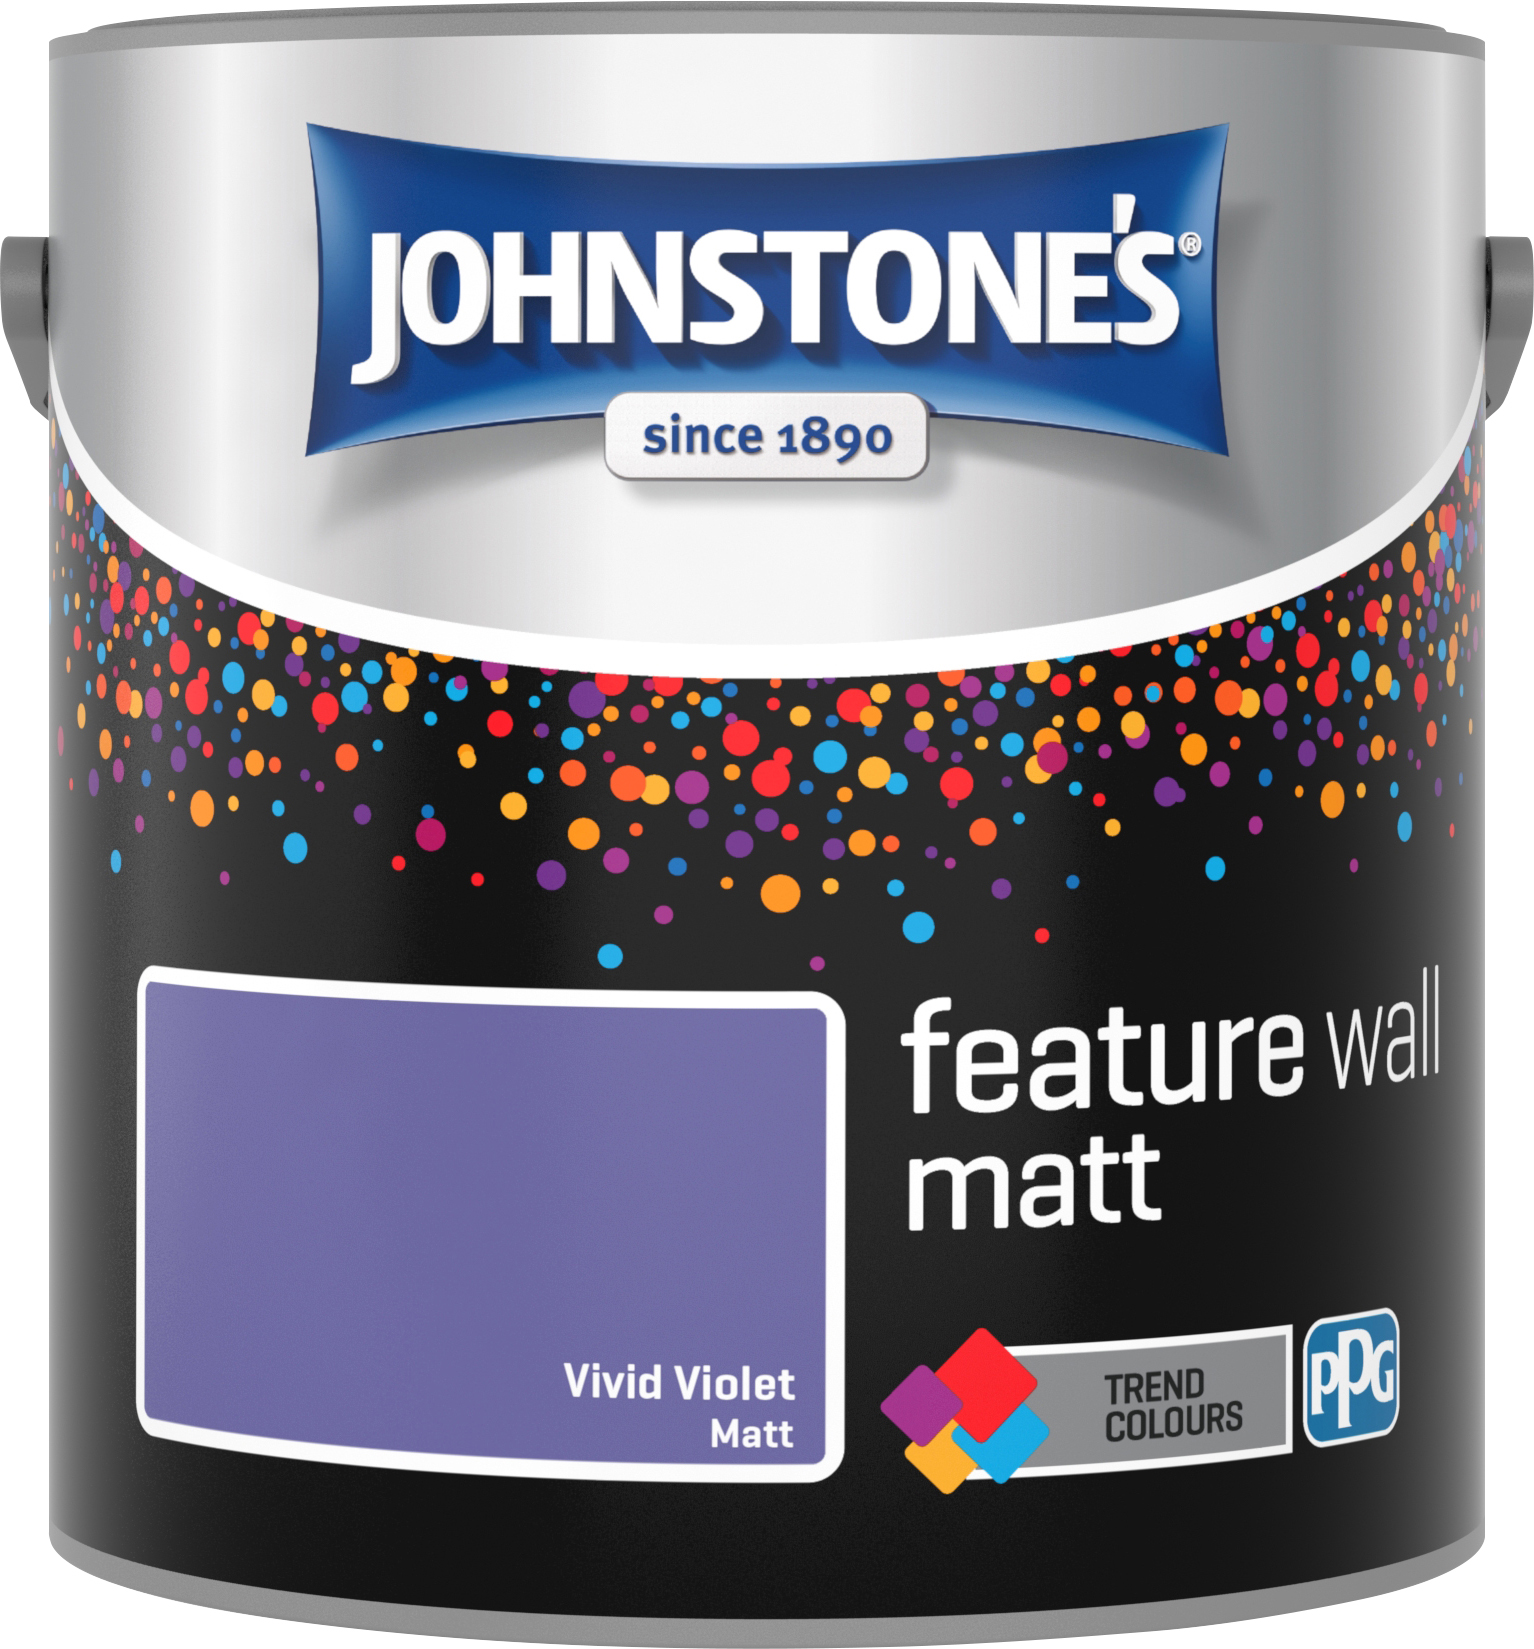 Johnstone's 2.5 Litre Feature Wall Matt Emulsion Paint - Vivid Violet